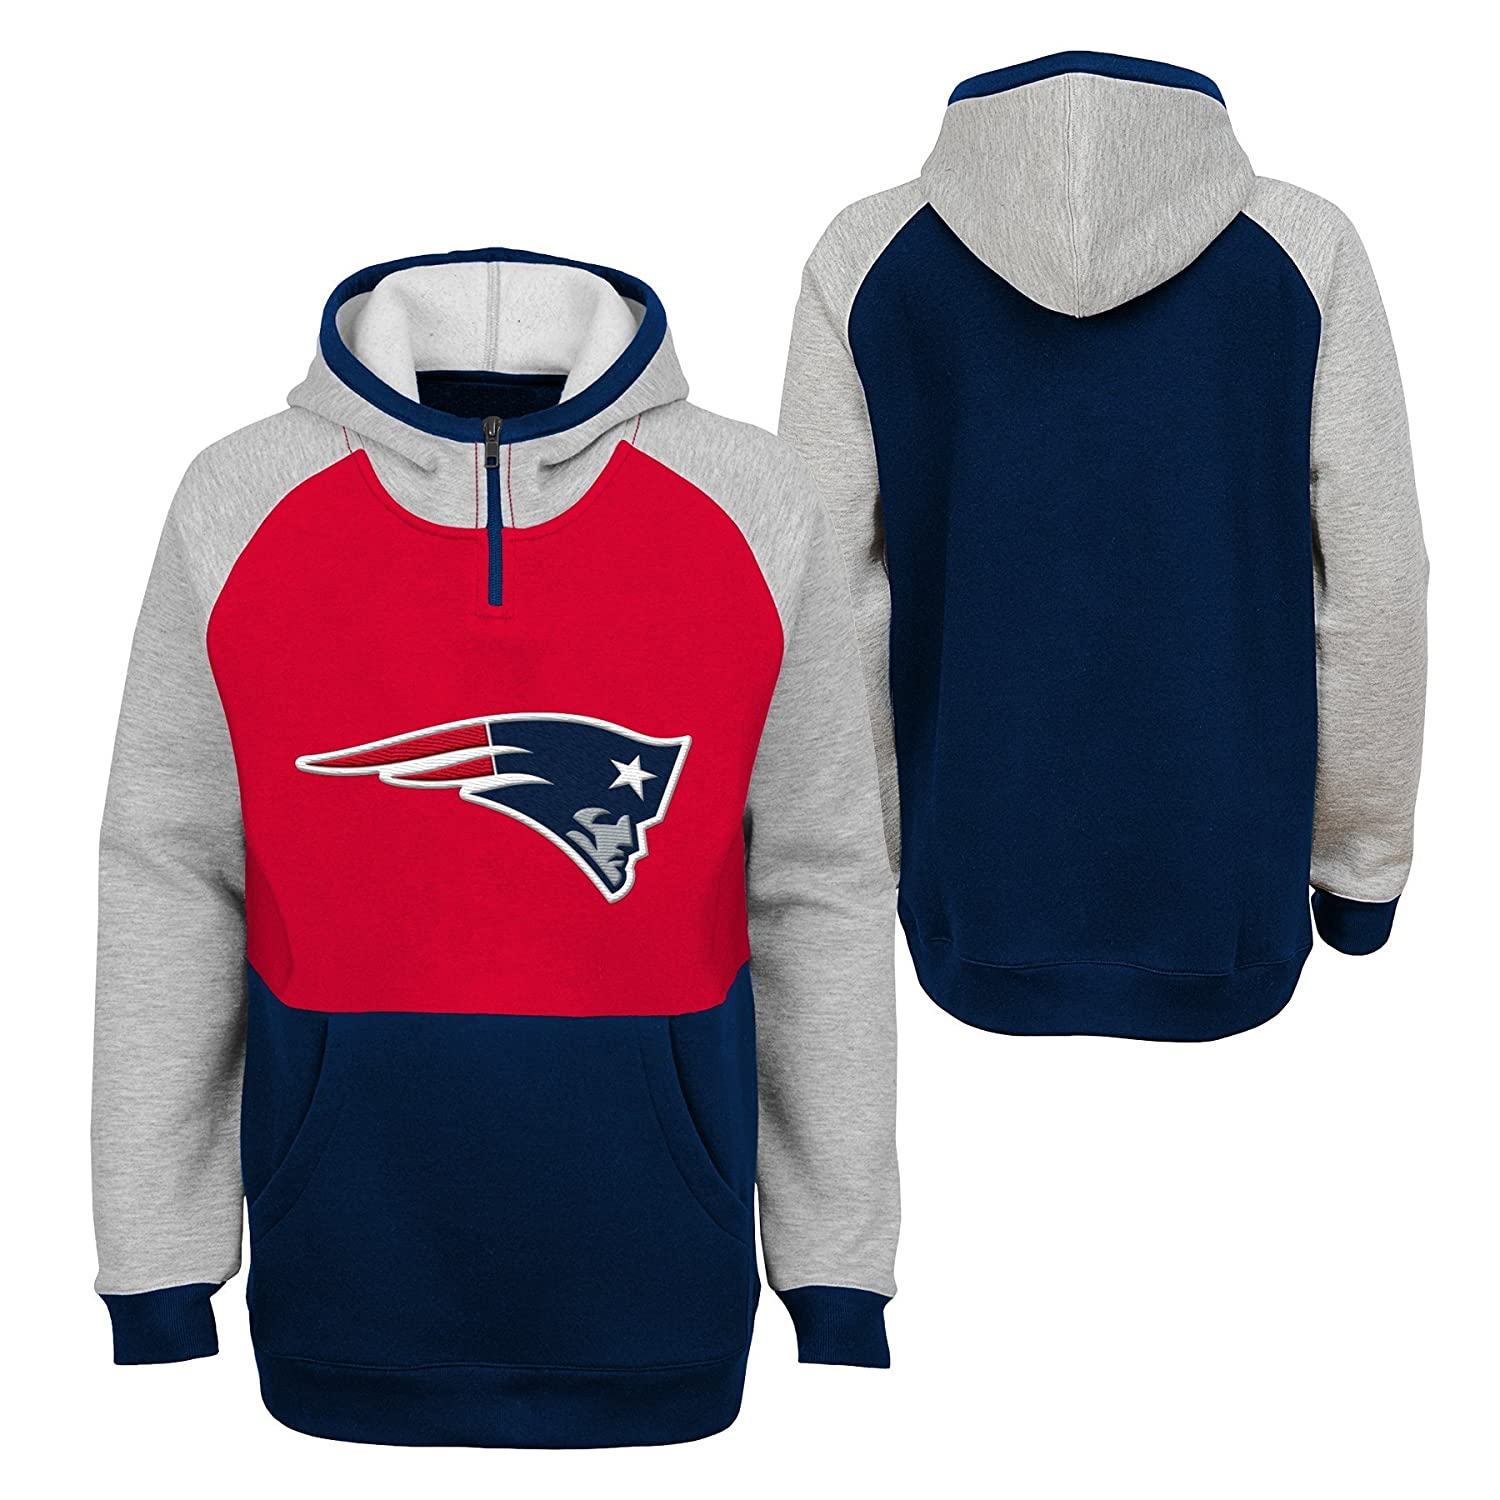 Outerstuff NFL Boys Youth Boys Regulator Hooded 1//4 Zip Top